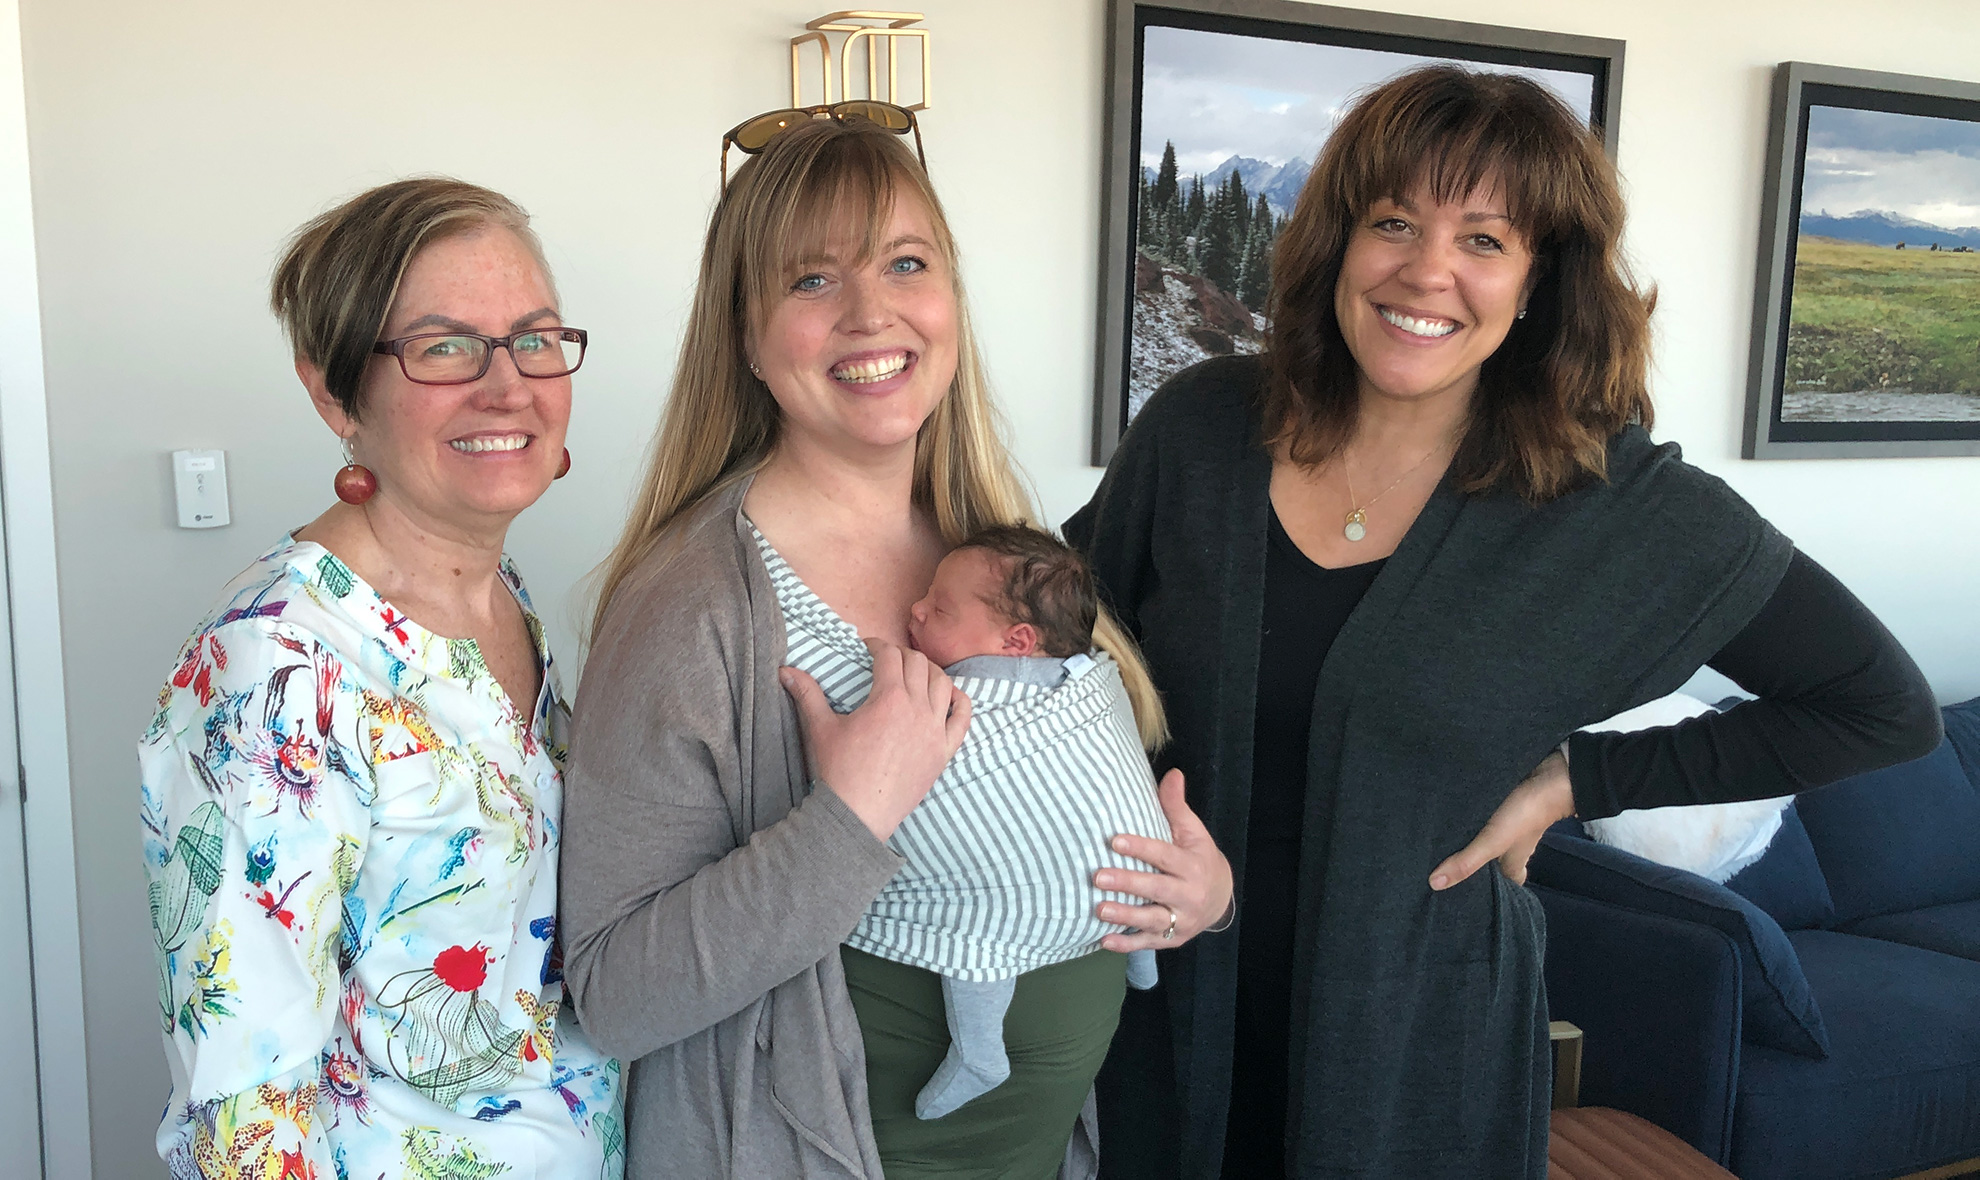 Midwife Anne and Doula Tara with a Hygge family